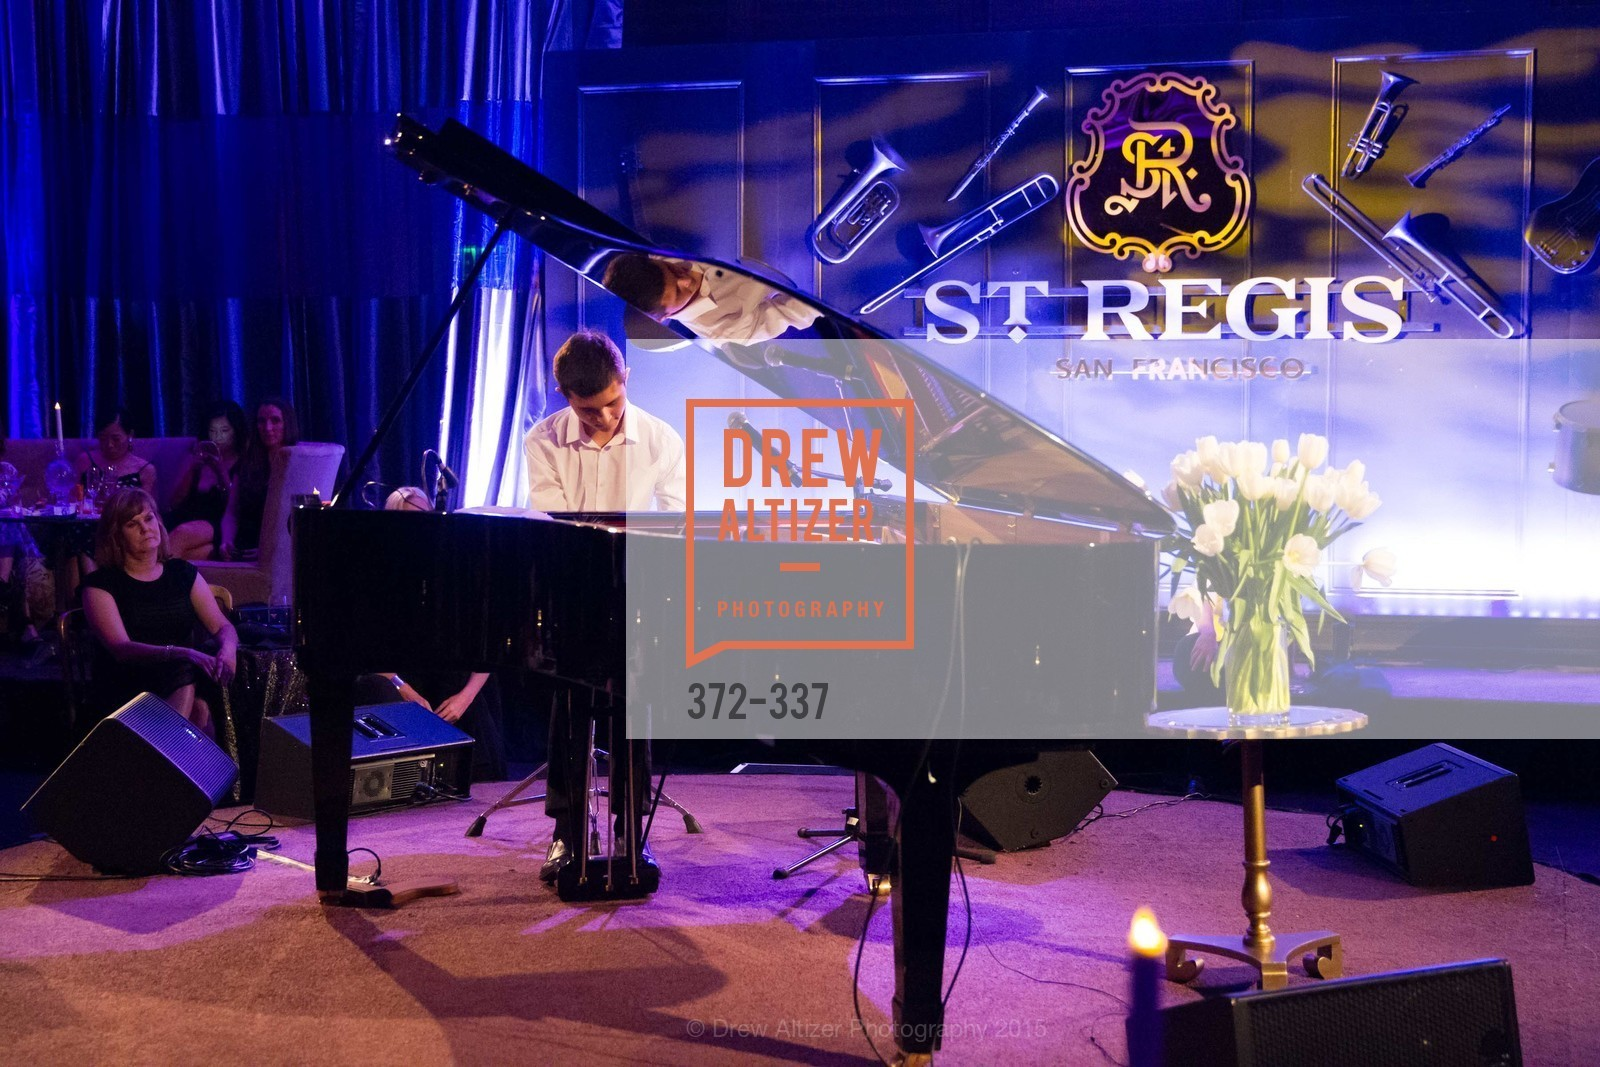 Performance, Jazz Legends At St. Regis Presents Jamie Cullum, October 3rd, 2015, Photo,Drew Altizer, Drew Altizer Photography, full-service agency, private events, San Francisco photographer, photographer california